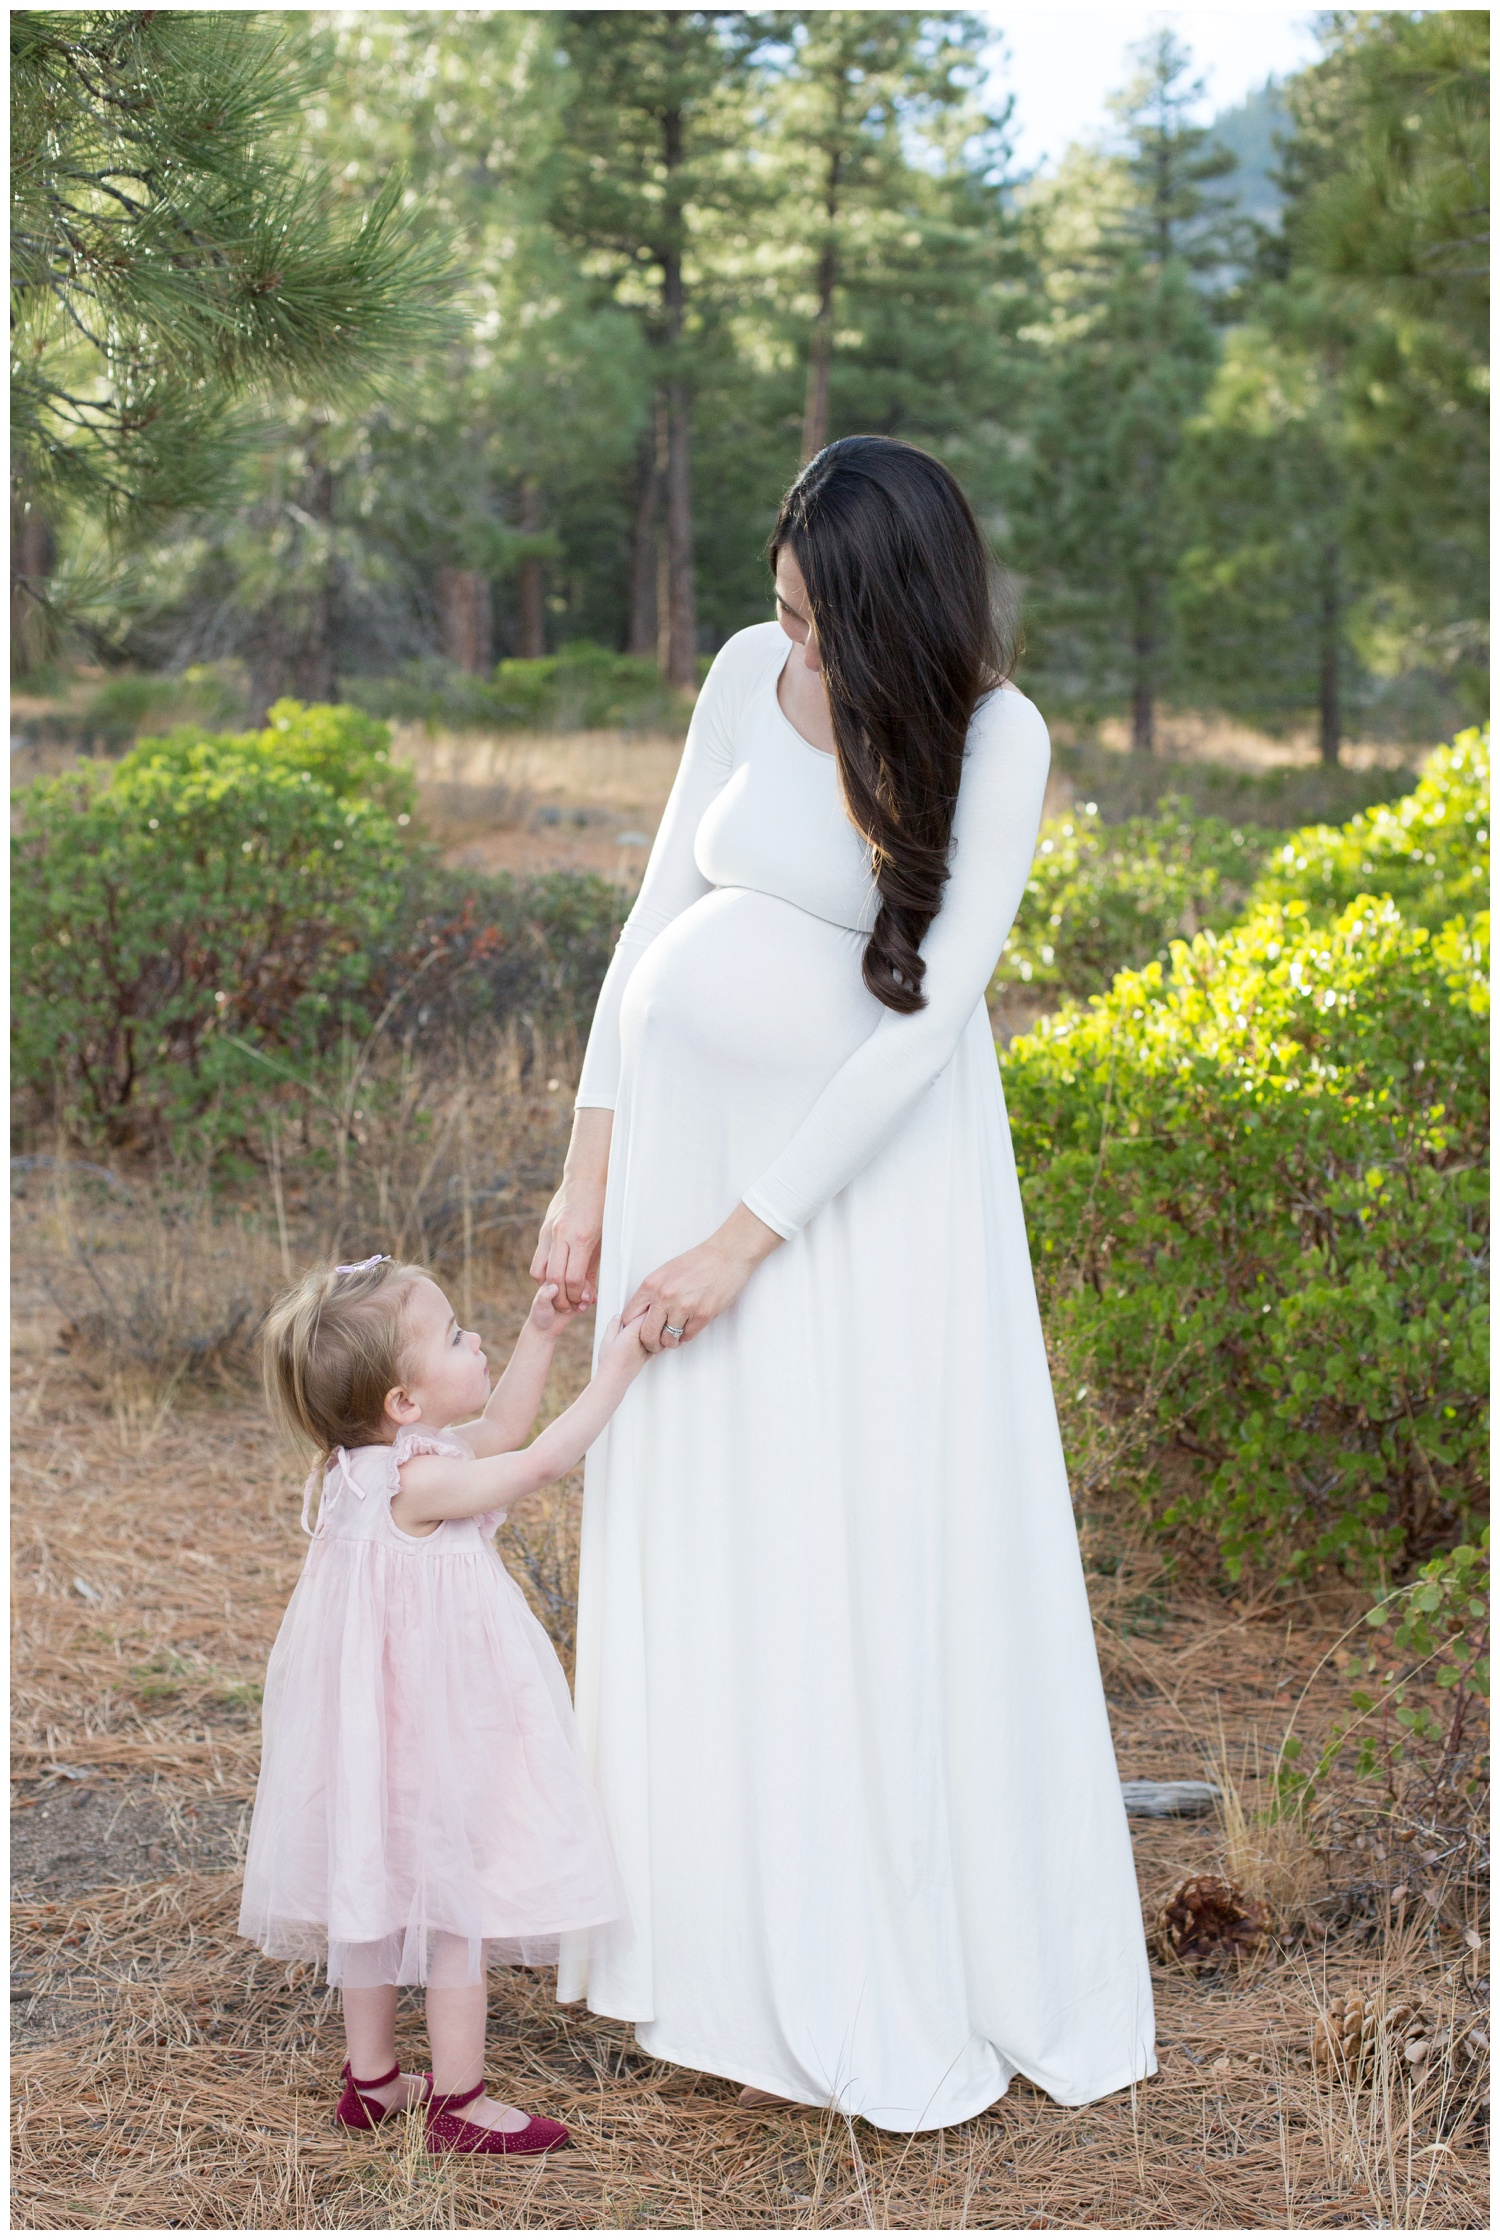 maternity photo mom with baby girl older sister